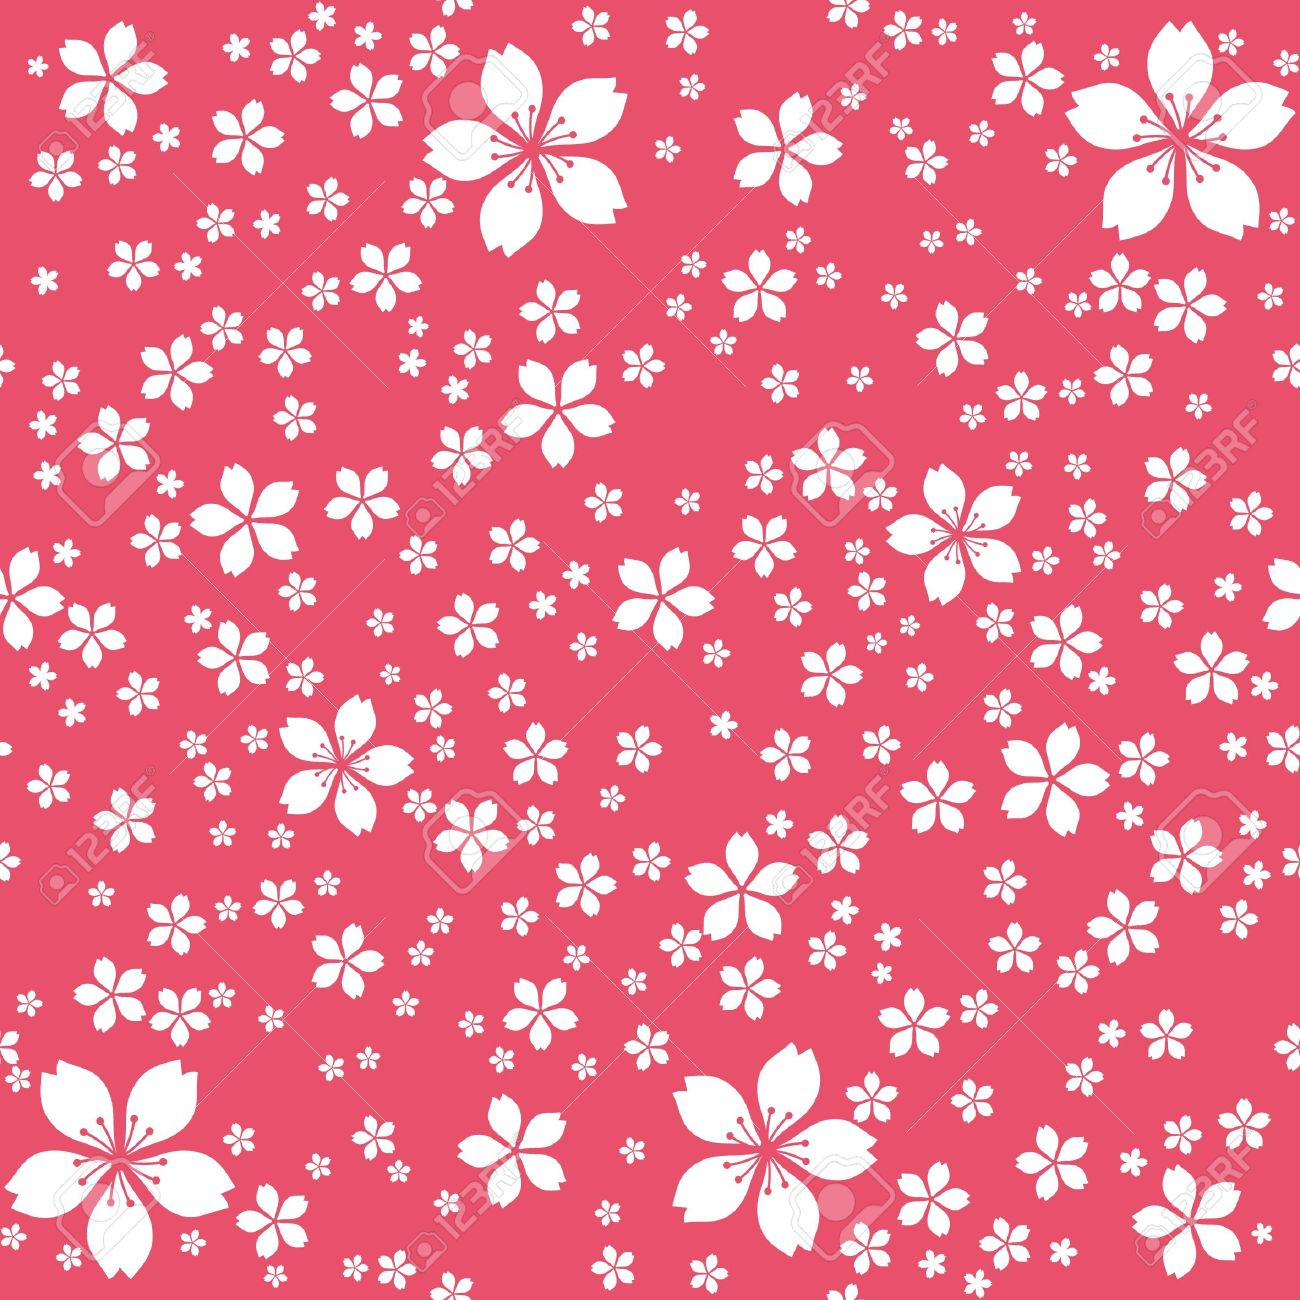 Cute floral seamless wallpaper white flowers at red background cute floral seamless wallpaper white flowers at red background stock vector 14254484 mightylinksfo